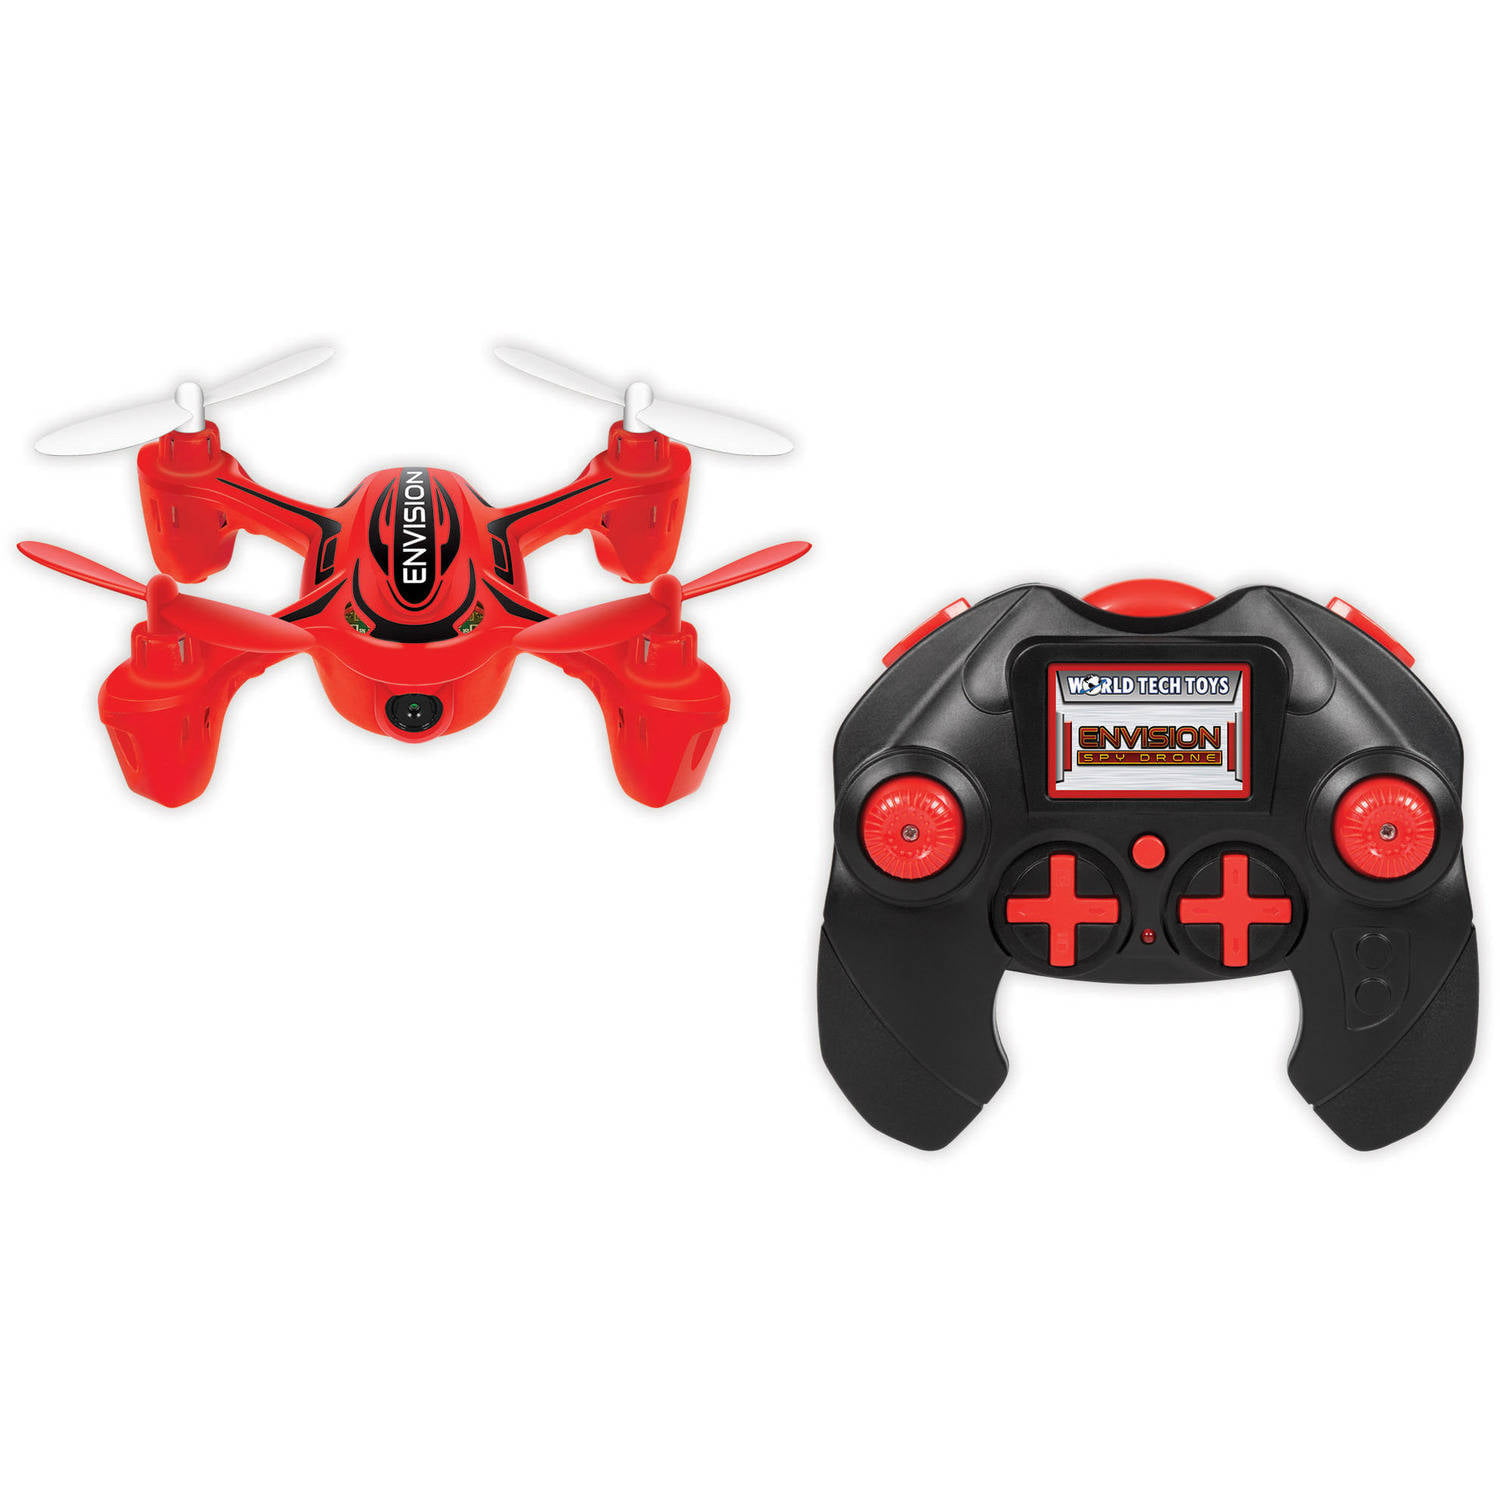 Envision 2.4GHz 4.5-Channel R C Spy Drone by World Tech Toys